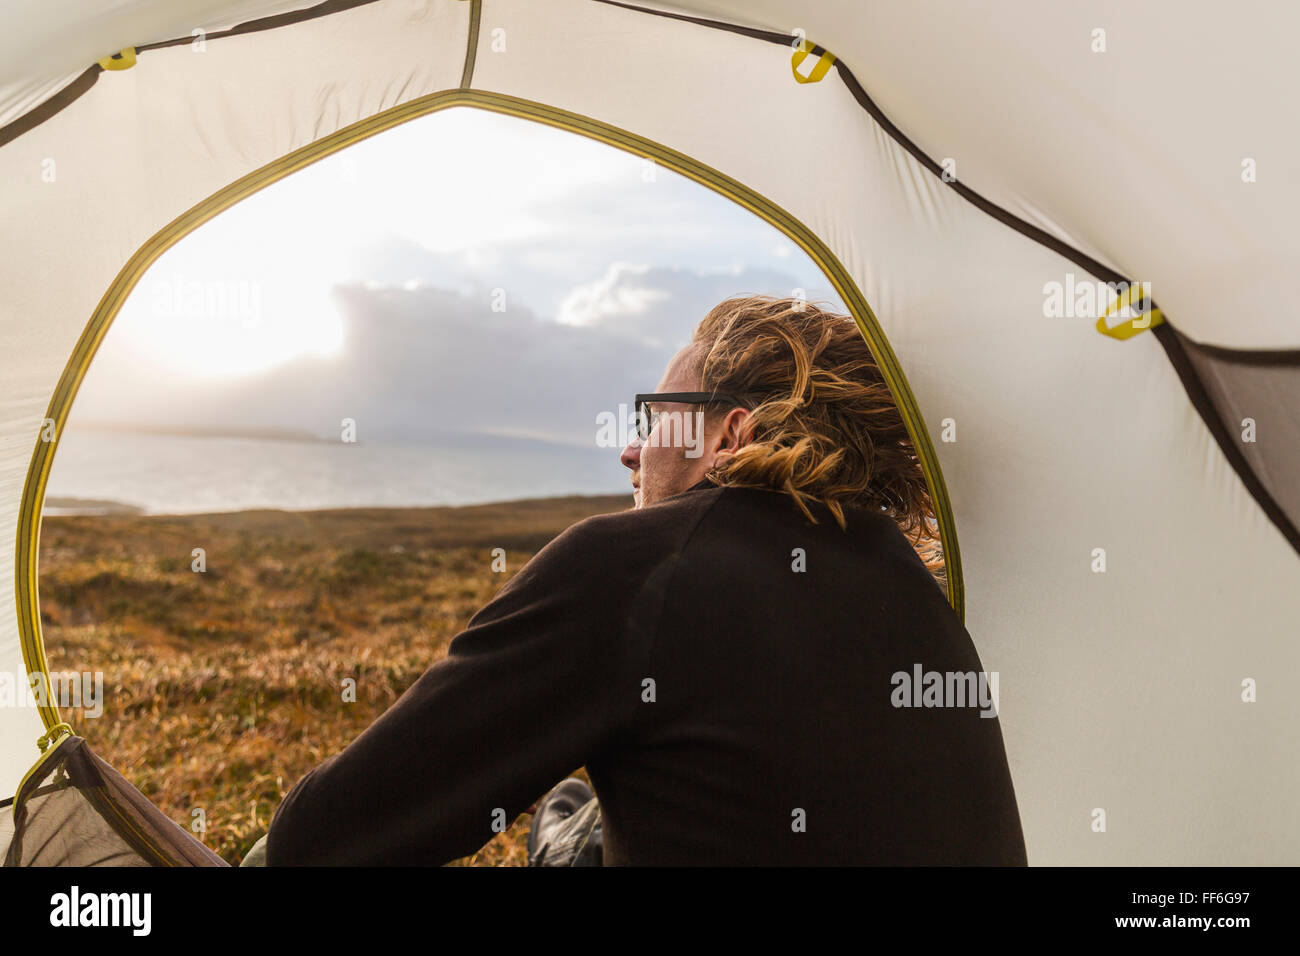 A man sitting in the shelter of a tent looking out. - Stock Image